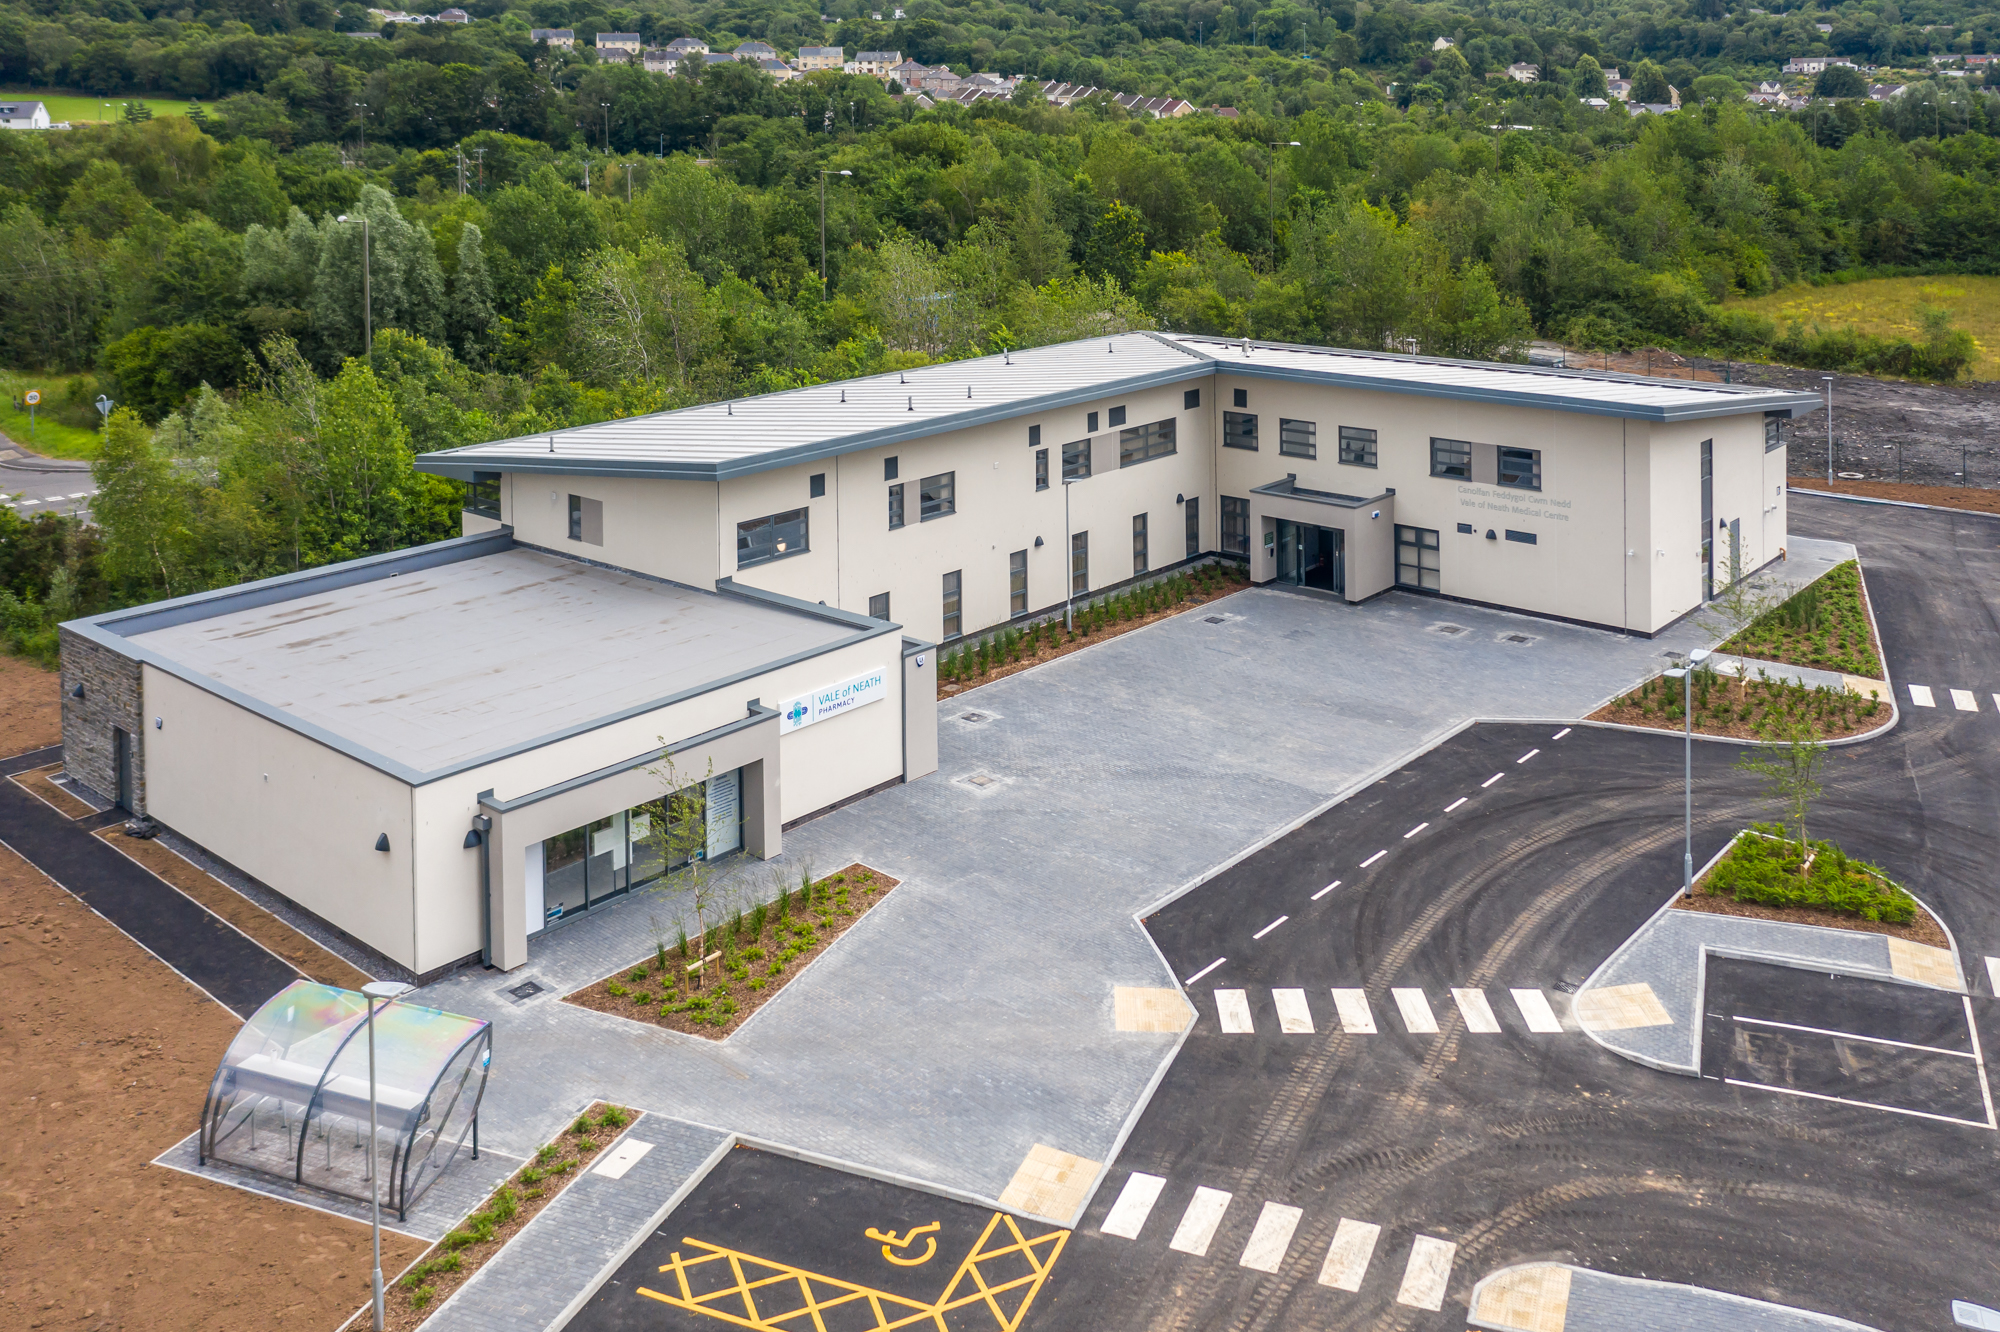 Vale Of Neath Medical Centre - Aerial View - WEB BASED FORMAT-1.jpg